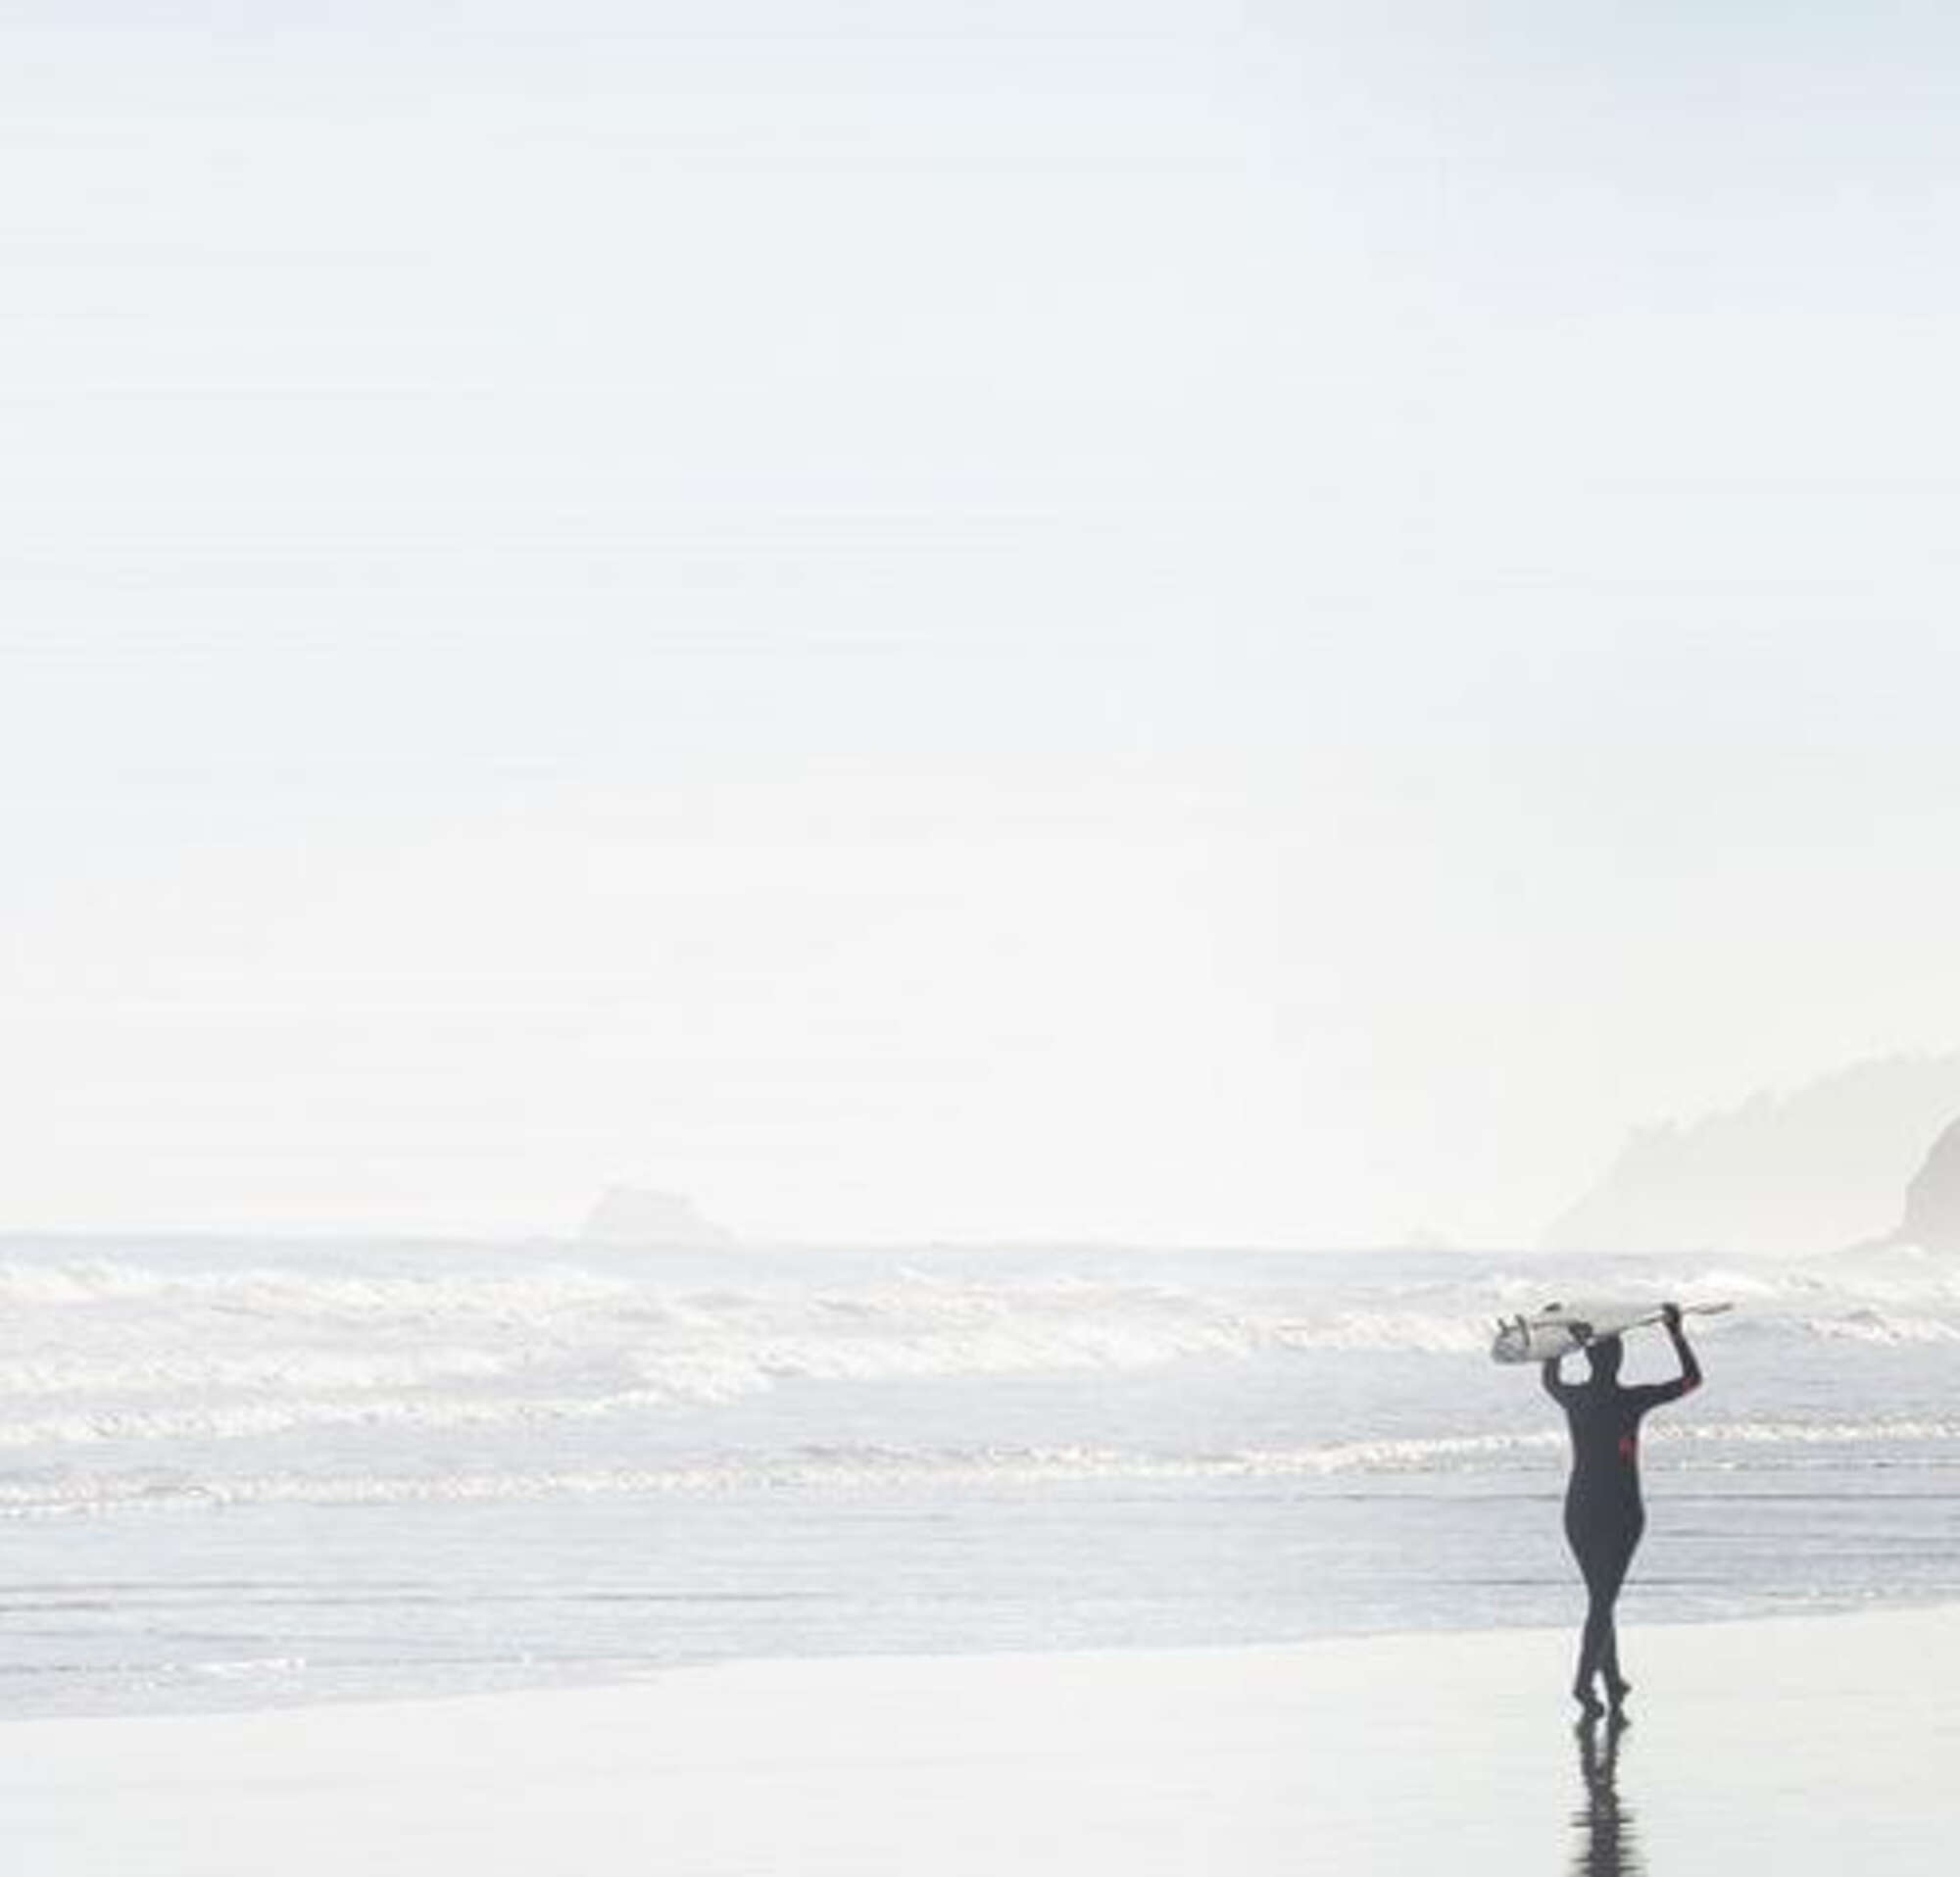 Two surfers walking together on a misty morning along a beach, carrying their surfboards above their heads.